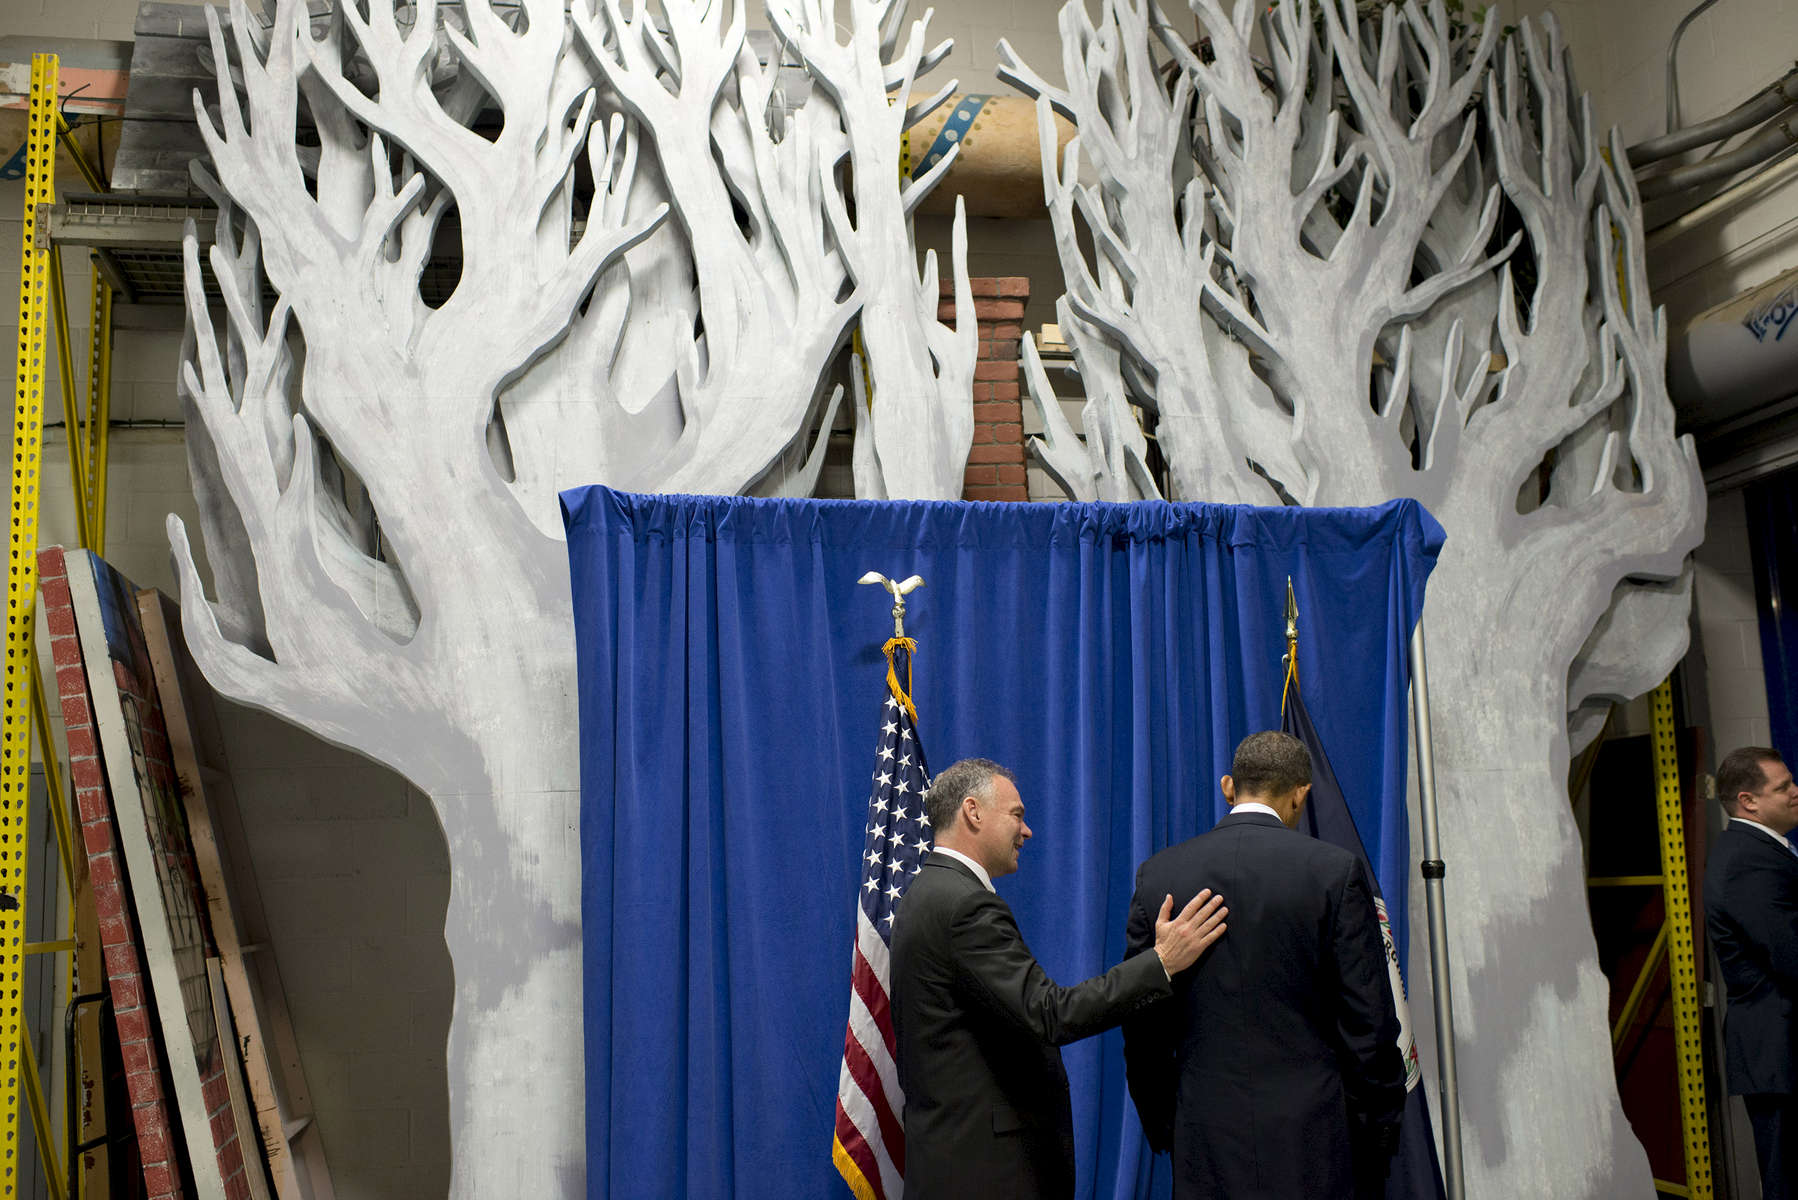 October 5, 2012 - Fairfax, VA: Former Virginia Governor Tim Kaine pats President Barack Obama on the back as they chat backstage at the George Mason University Center for the Arts Concert Hall.  (Scout Tufankjian for Obama for America/Polaris)